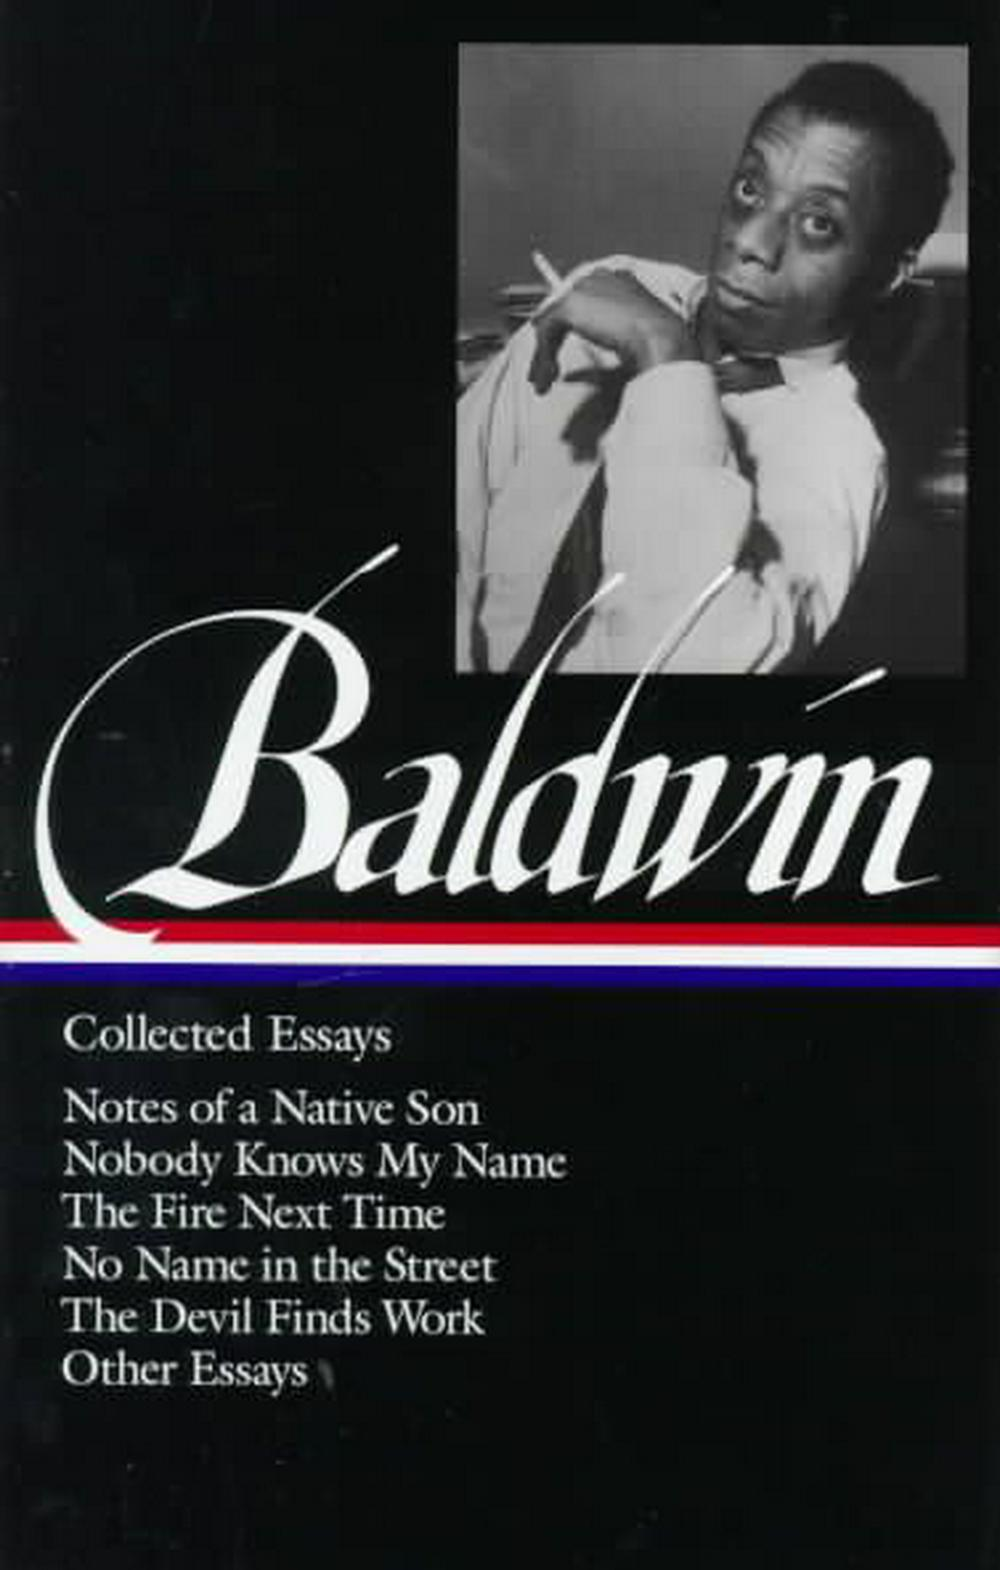 007 James Baldwin Collected Essays 9781883011529r5c3810cfda494 Essay Wondrous Google Books Pdf Table Of Contents Full